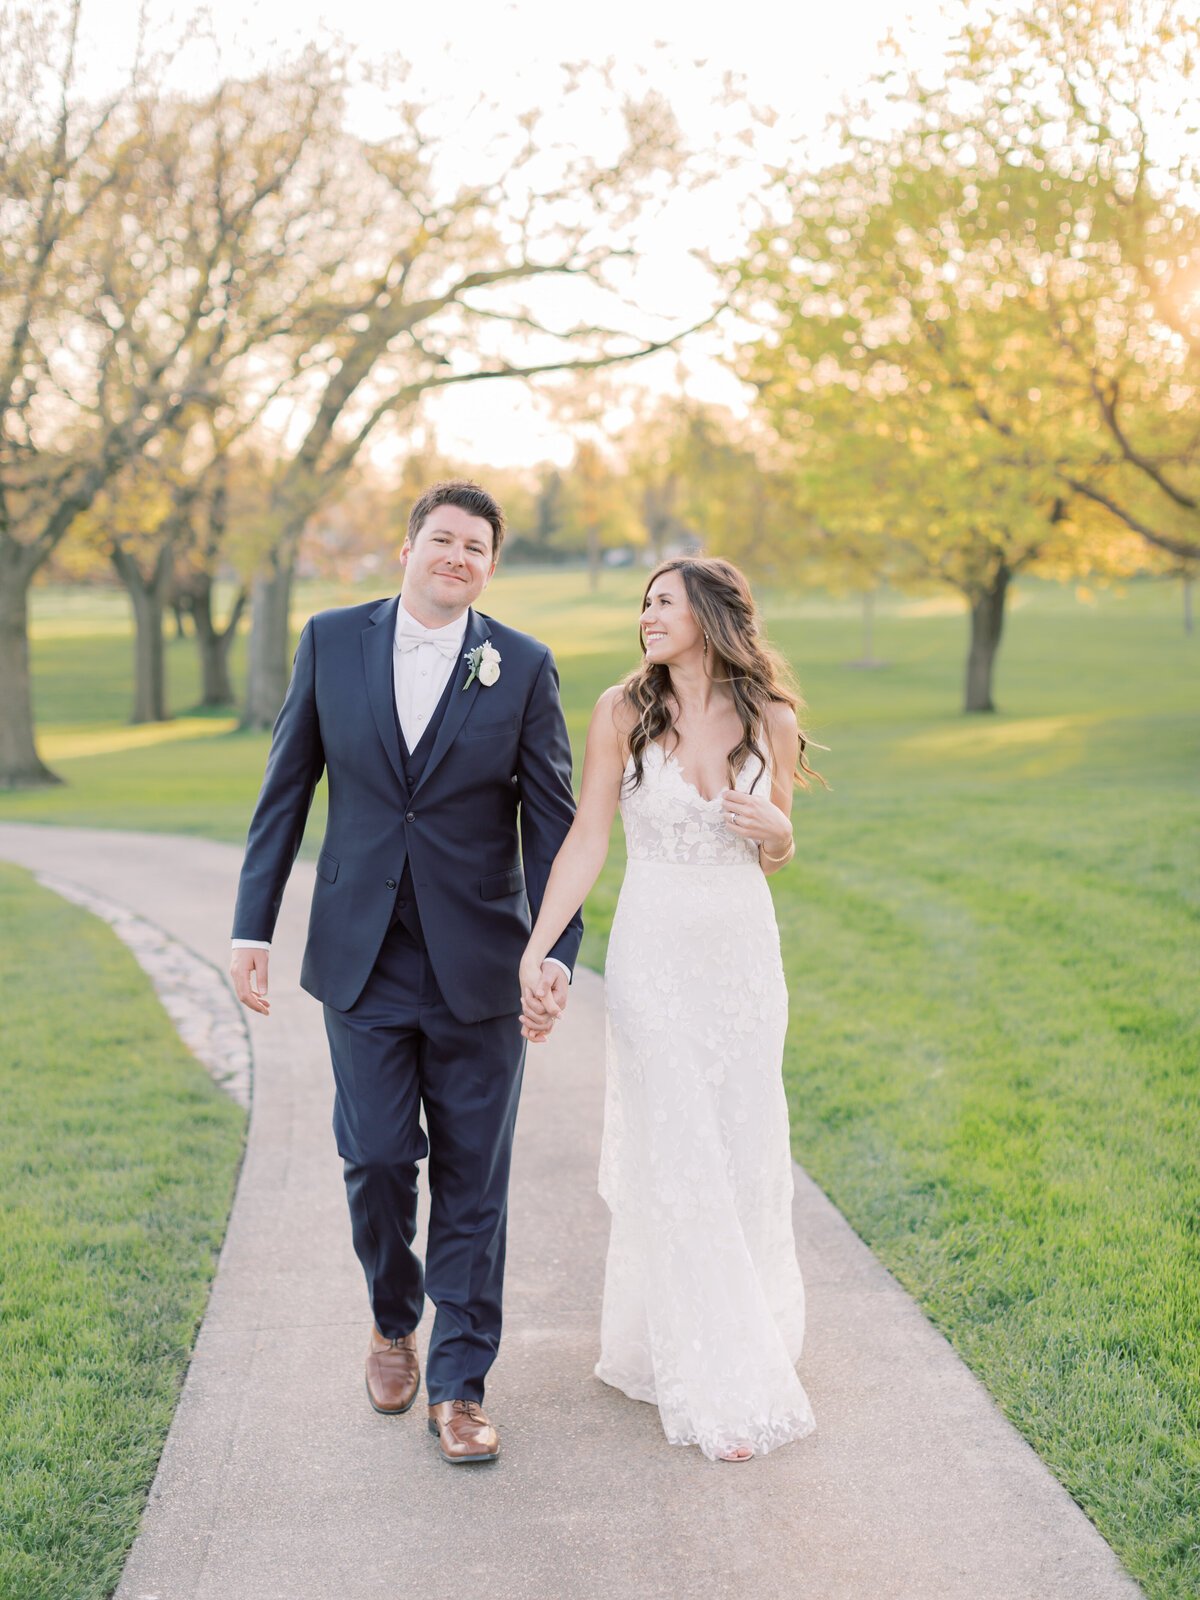 TiffaneyChildsPhotography-ChicagoWeddingPhotographer-Chloe+Jon-HinsdaleCountryClubWedding-BridalPortraits-104